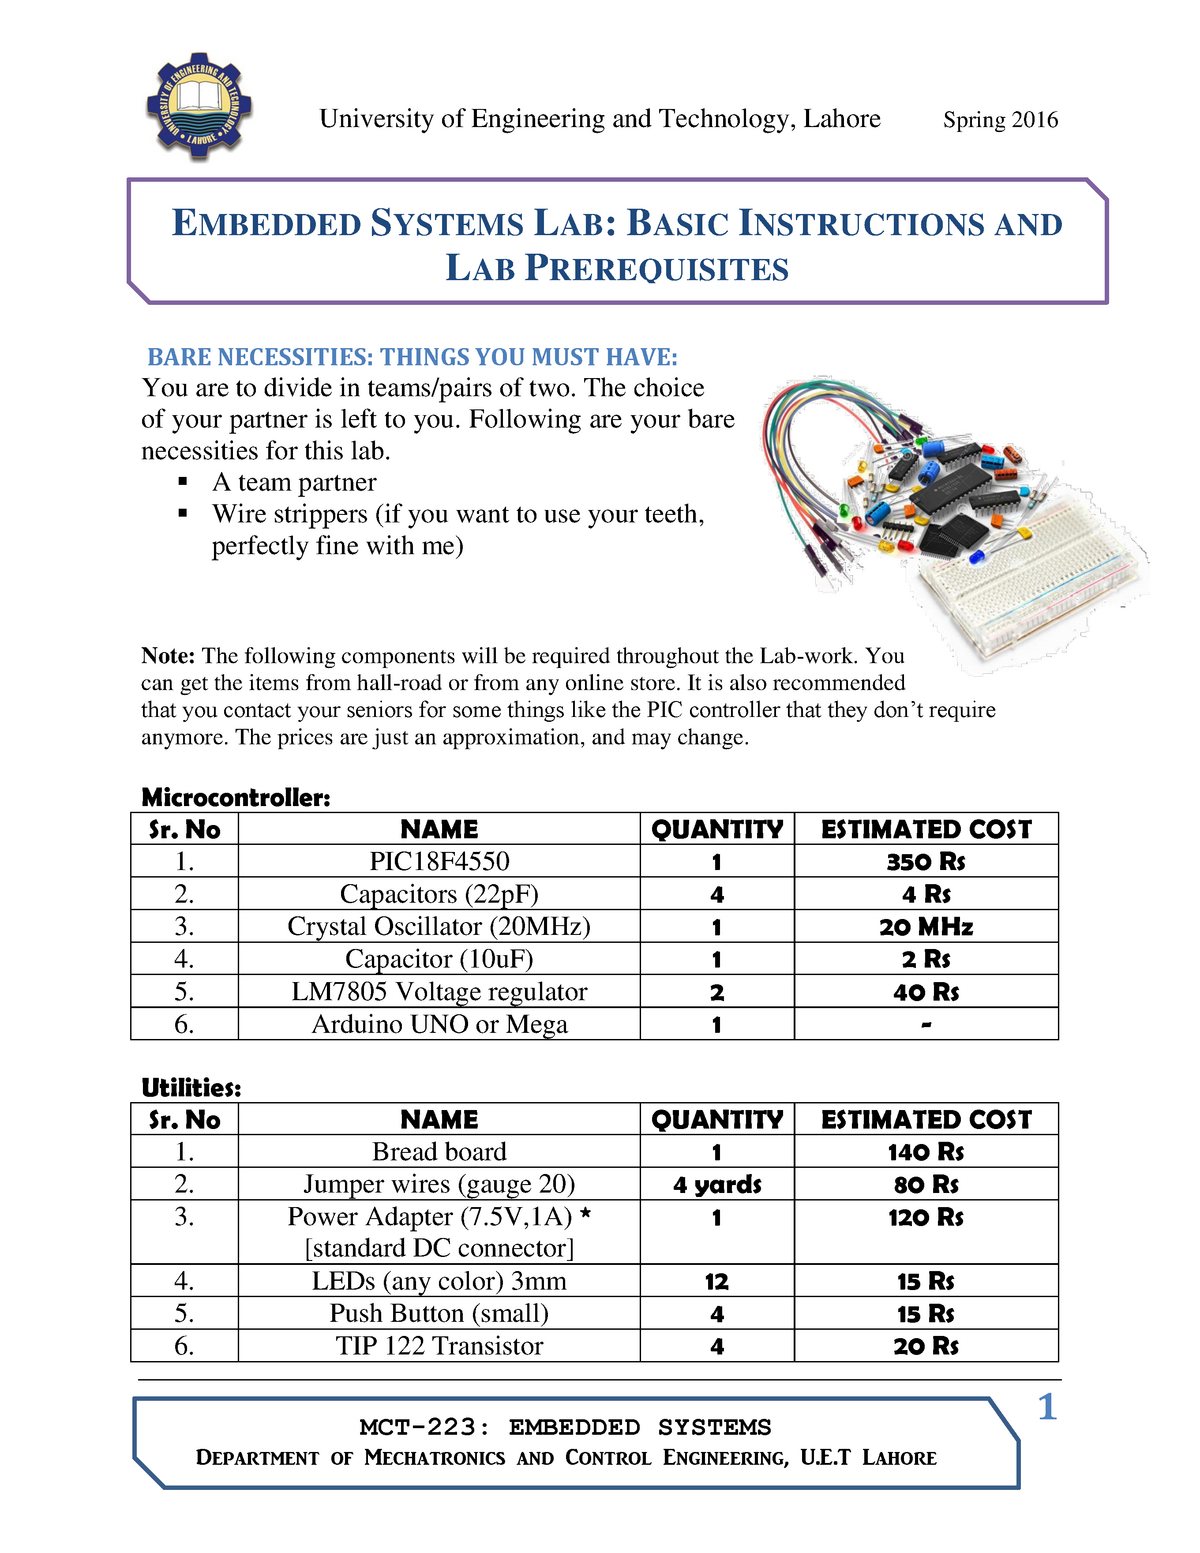 Practical - Assembly Programs, Lab 1-4 - Embedded system